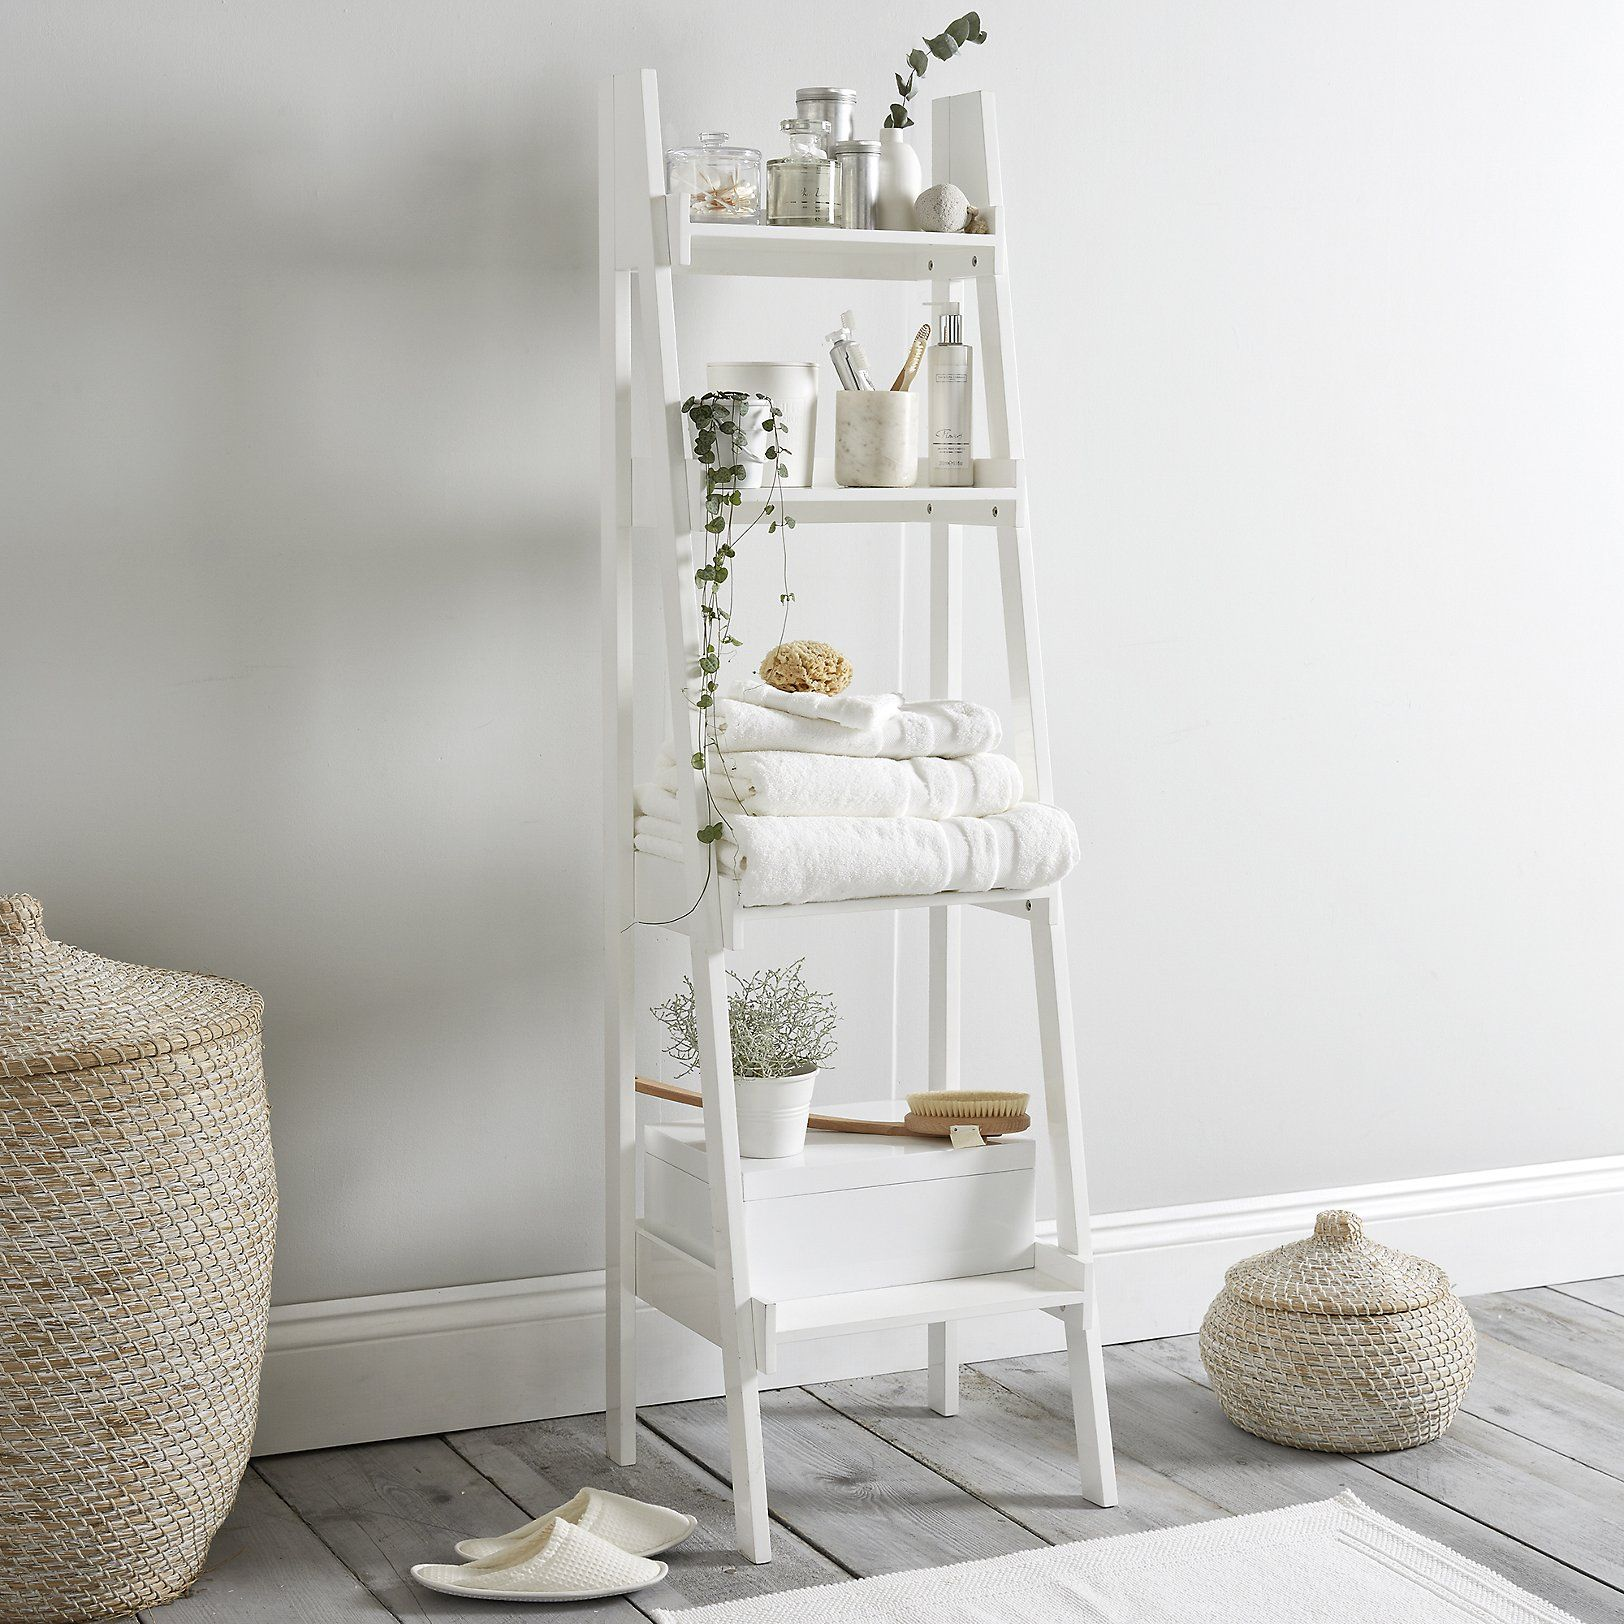 Lacquer Bathroom Ladder Shelf Stocked Made To Order Furniture Furniture Home The White Co Bathroom Ladder Bathroom Storage Ladder Bathroom Ladder Shelf